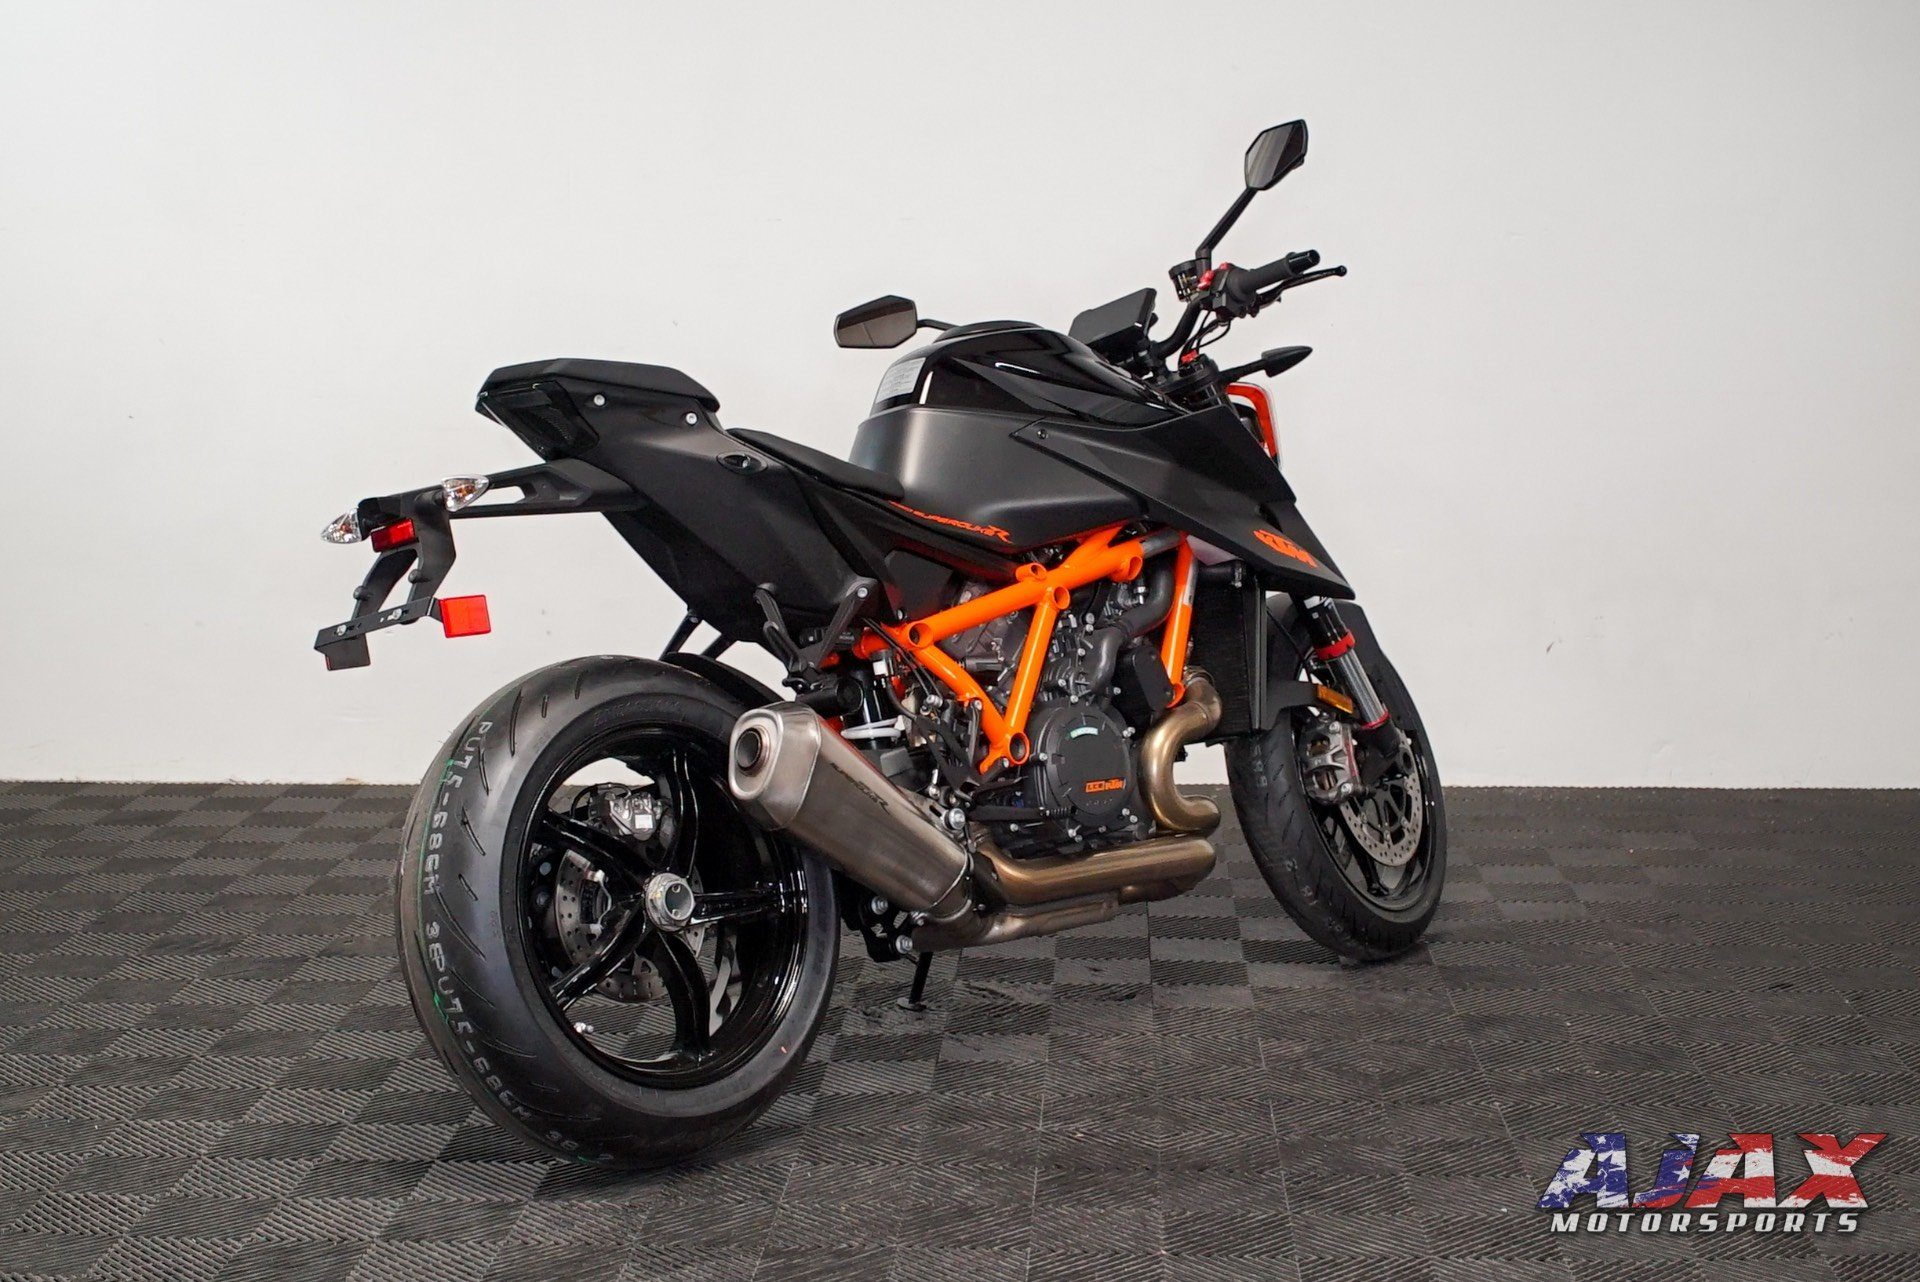 2020 KTM 1290 Super Duke R in Oklahoma City, Oklahoma - Photo 7